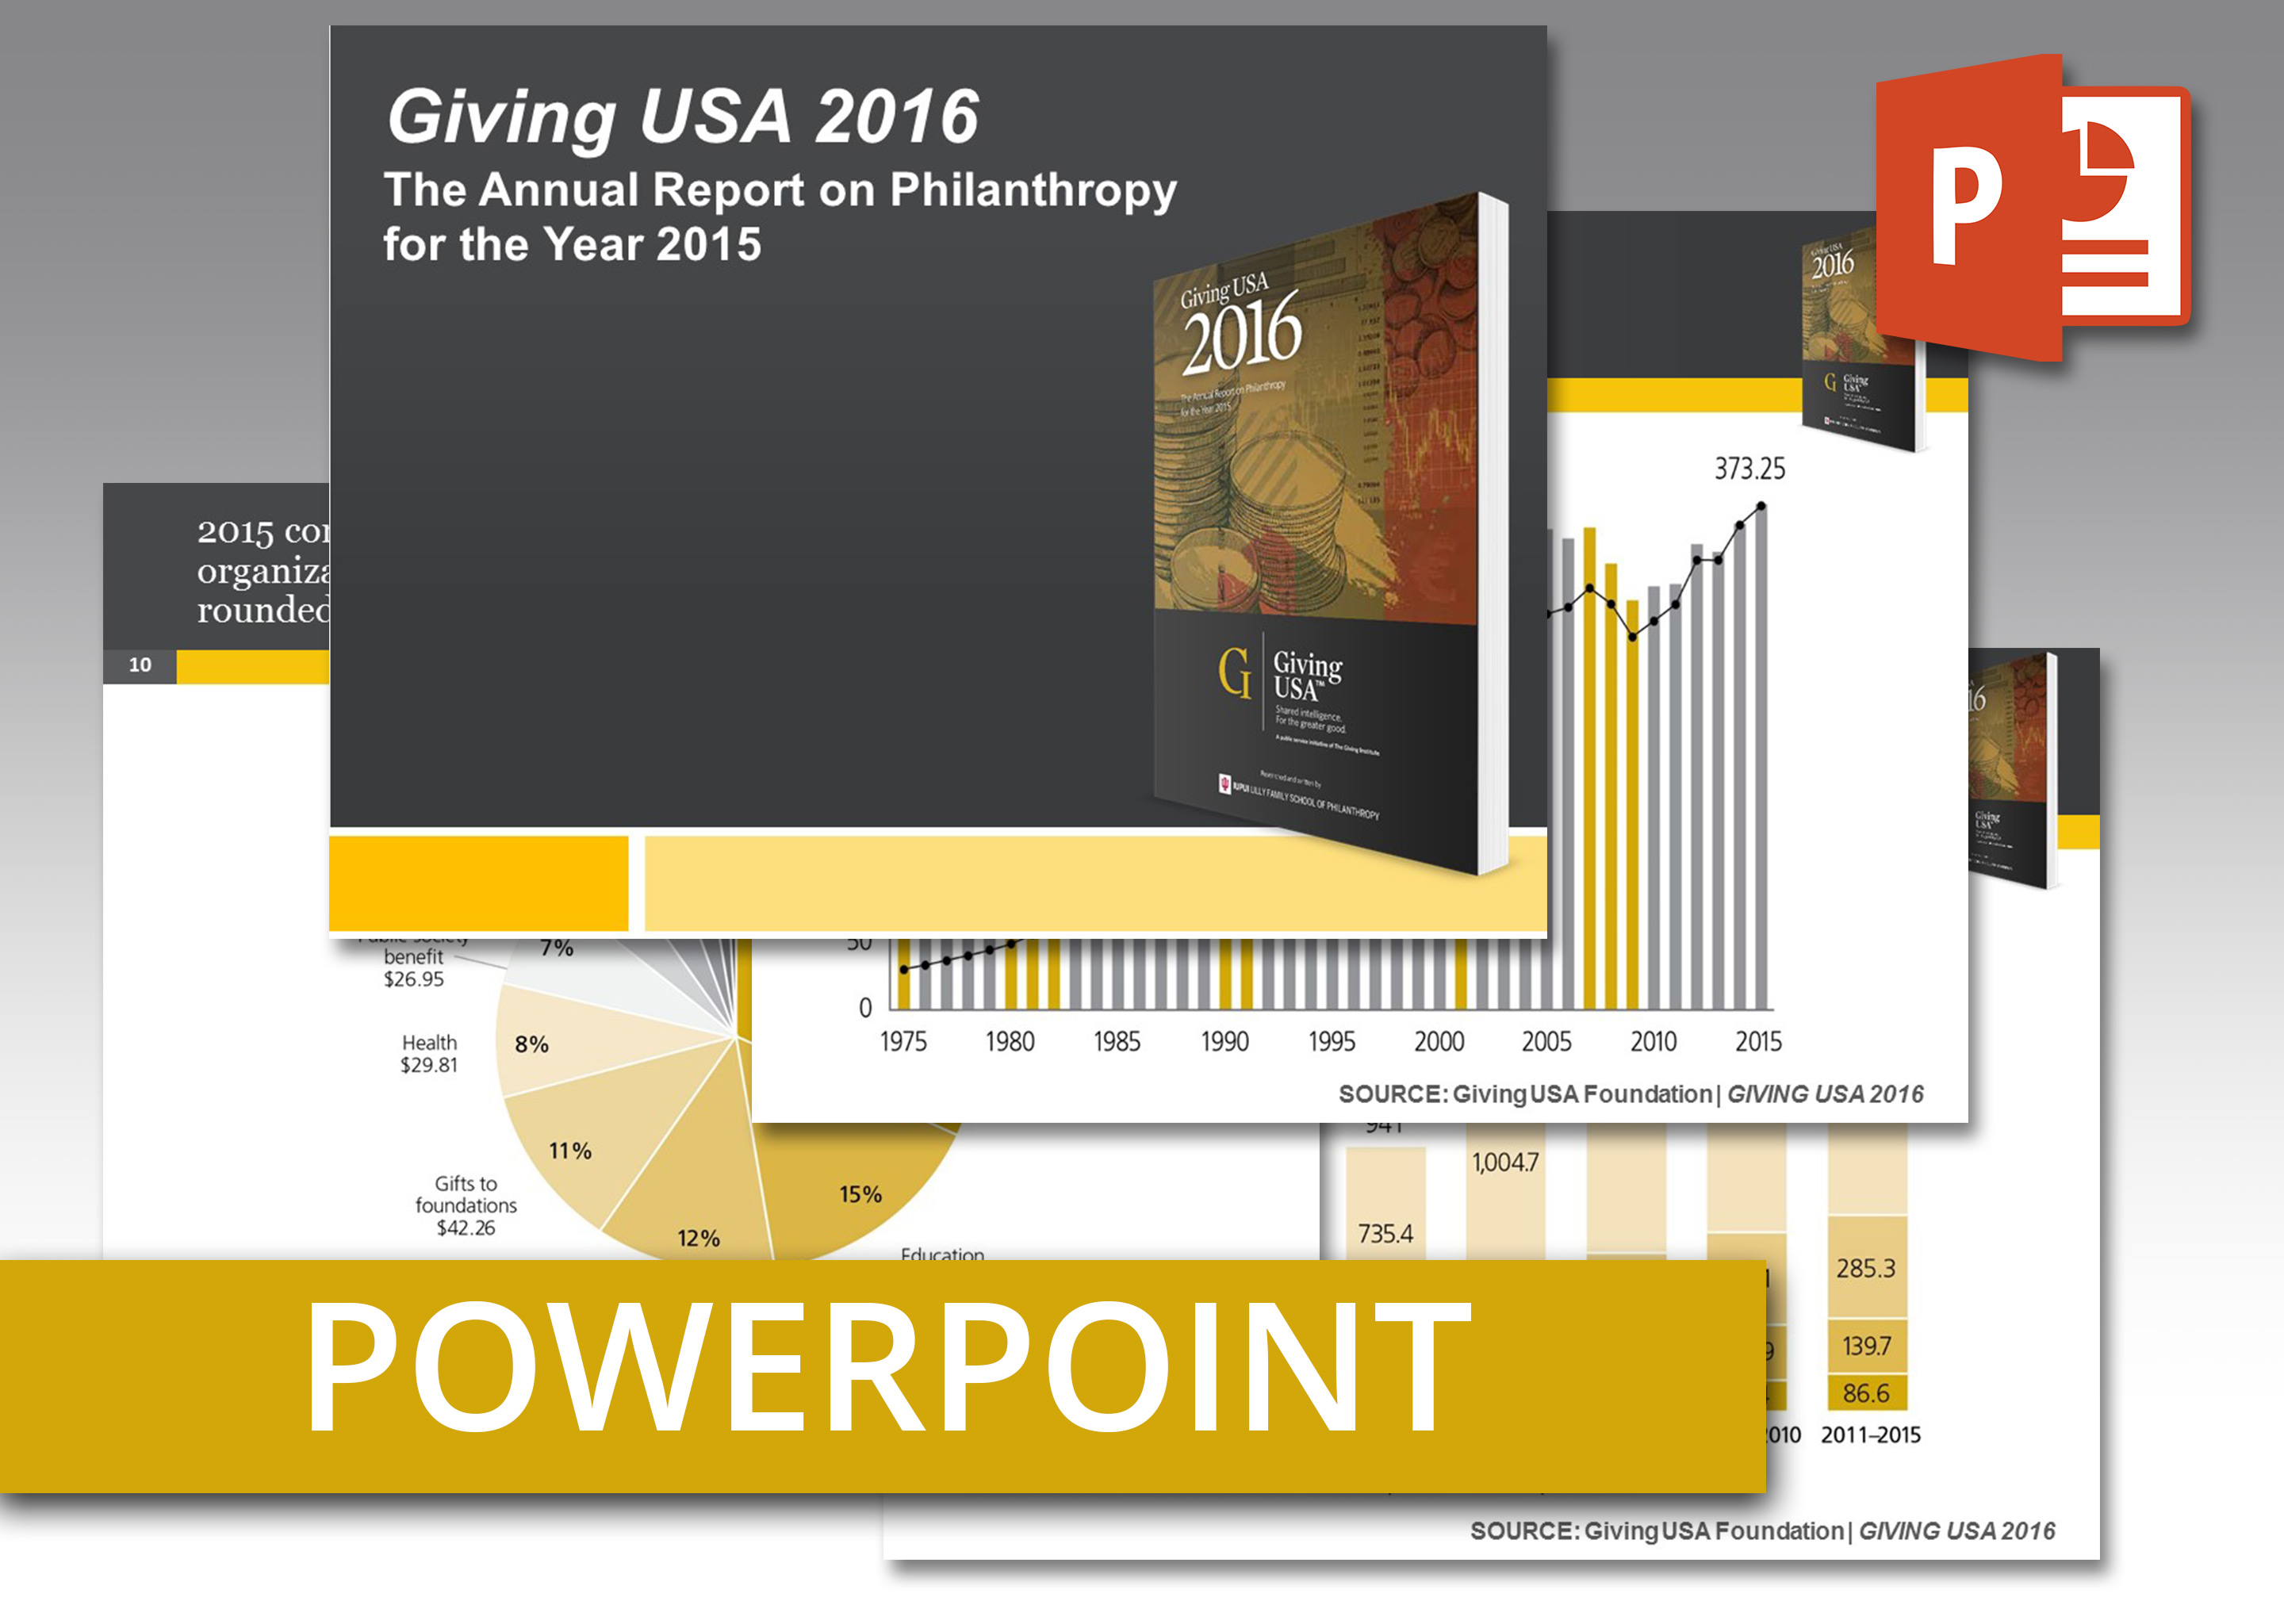 Coolmathgamesus  Pleasing Giving Usa  Powerpoint An Easytouse Presentation Of Report  With Hot Giving Usa  Powerpoint An Easytouse Presentation Of Report Findings Including Talking Points With Cool Powerpoint Presentation Definition Also Powerpoint Formats In Addition Picture Slideshow Powerpoint And Starbucks Powerpoint As Well As Volume Powerpoint Additionally Free Powerpoint Templates Microsoft From Givingusaorg With Coolmathgamesus  Hot Giving Usa  Powerpoint An Easytouse Presentation Of Report  With Cool Giving Usa  Powerpoint An Easytouse Presentation Of Report Findings Including Talking Points And Pleasing Powerpoint Presentation Definition Also Powerpoint Formats In Addition Picture Slideshow Powerpoint From Givingusaorg